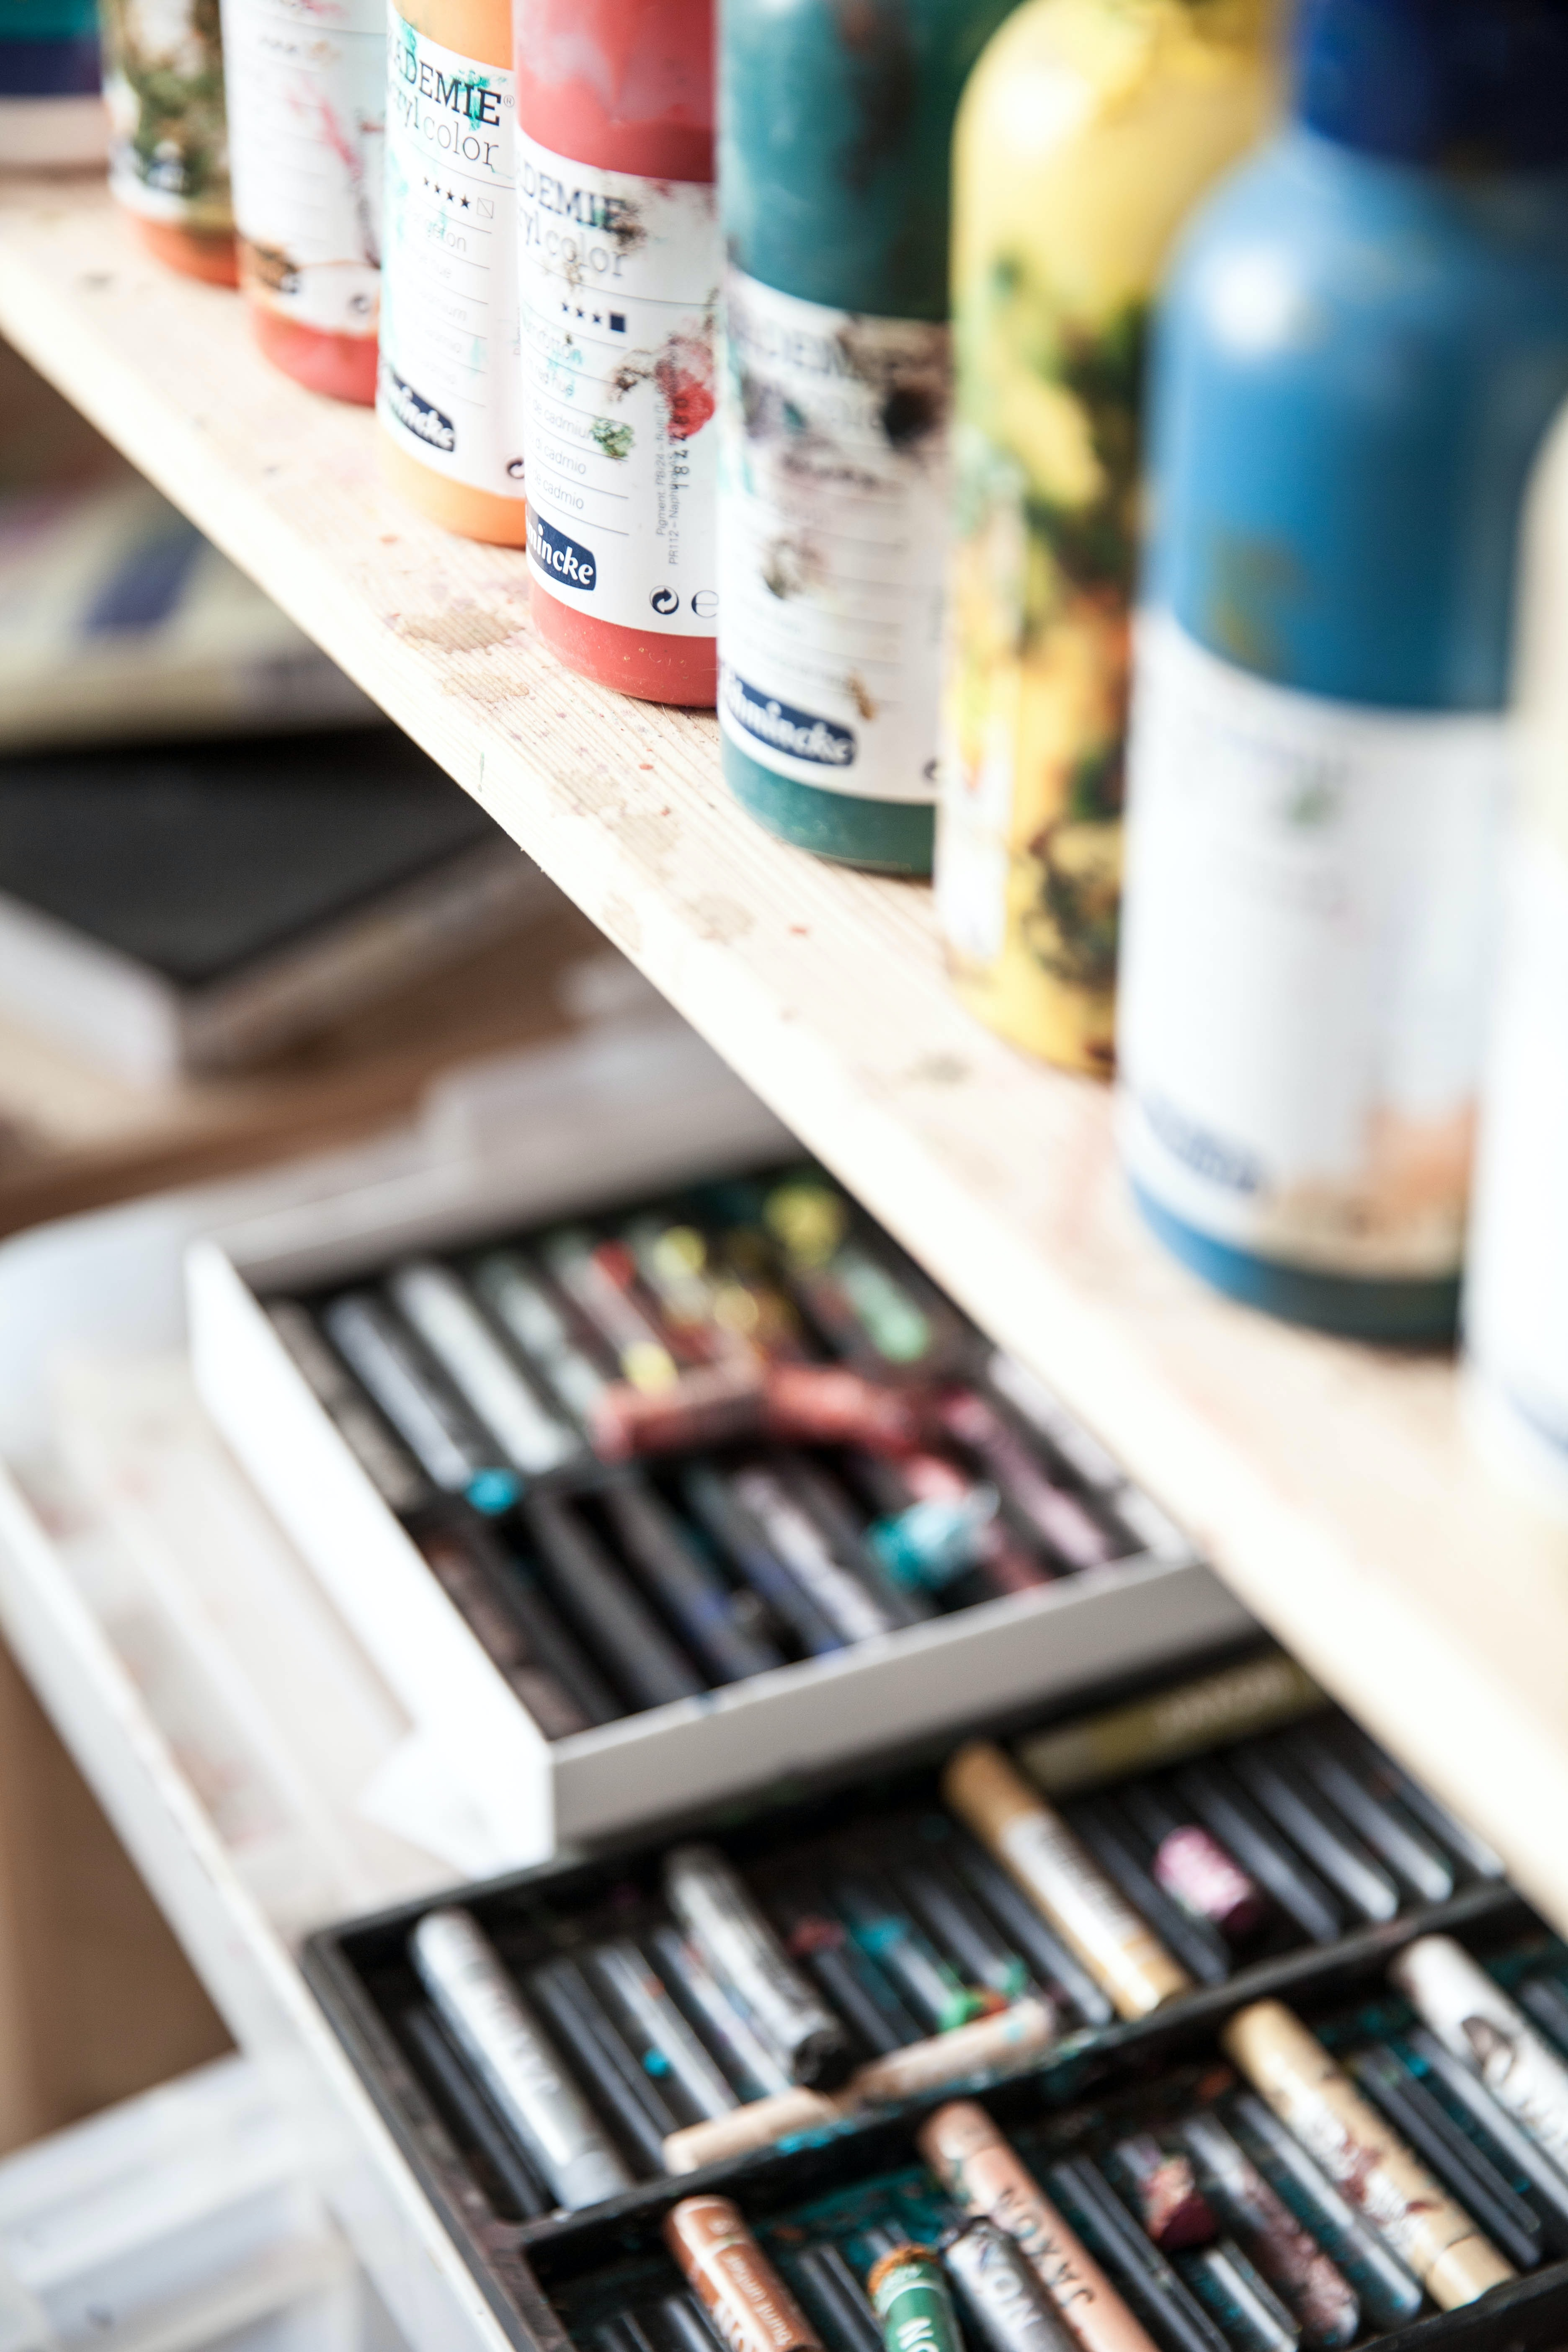 Close up of paint, oil pastel and drawers containing art supplies